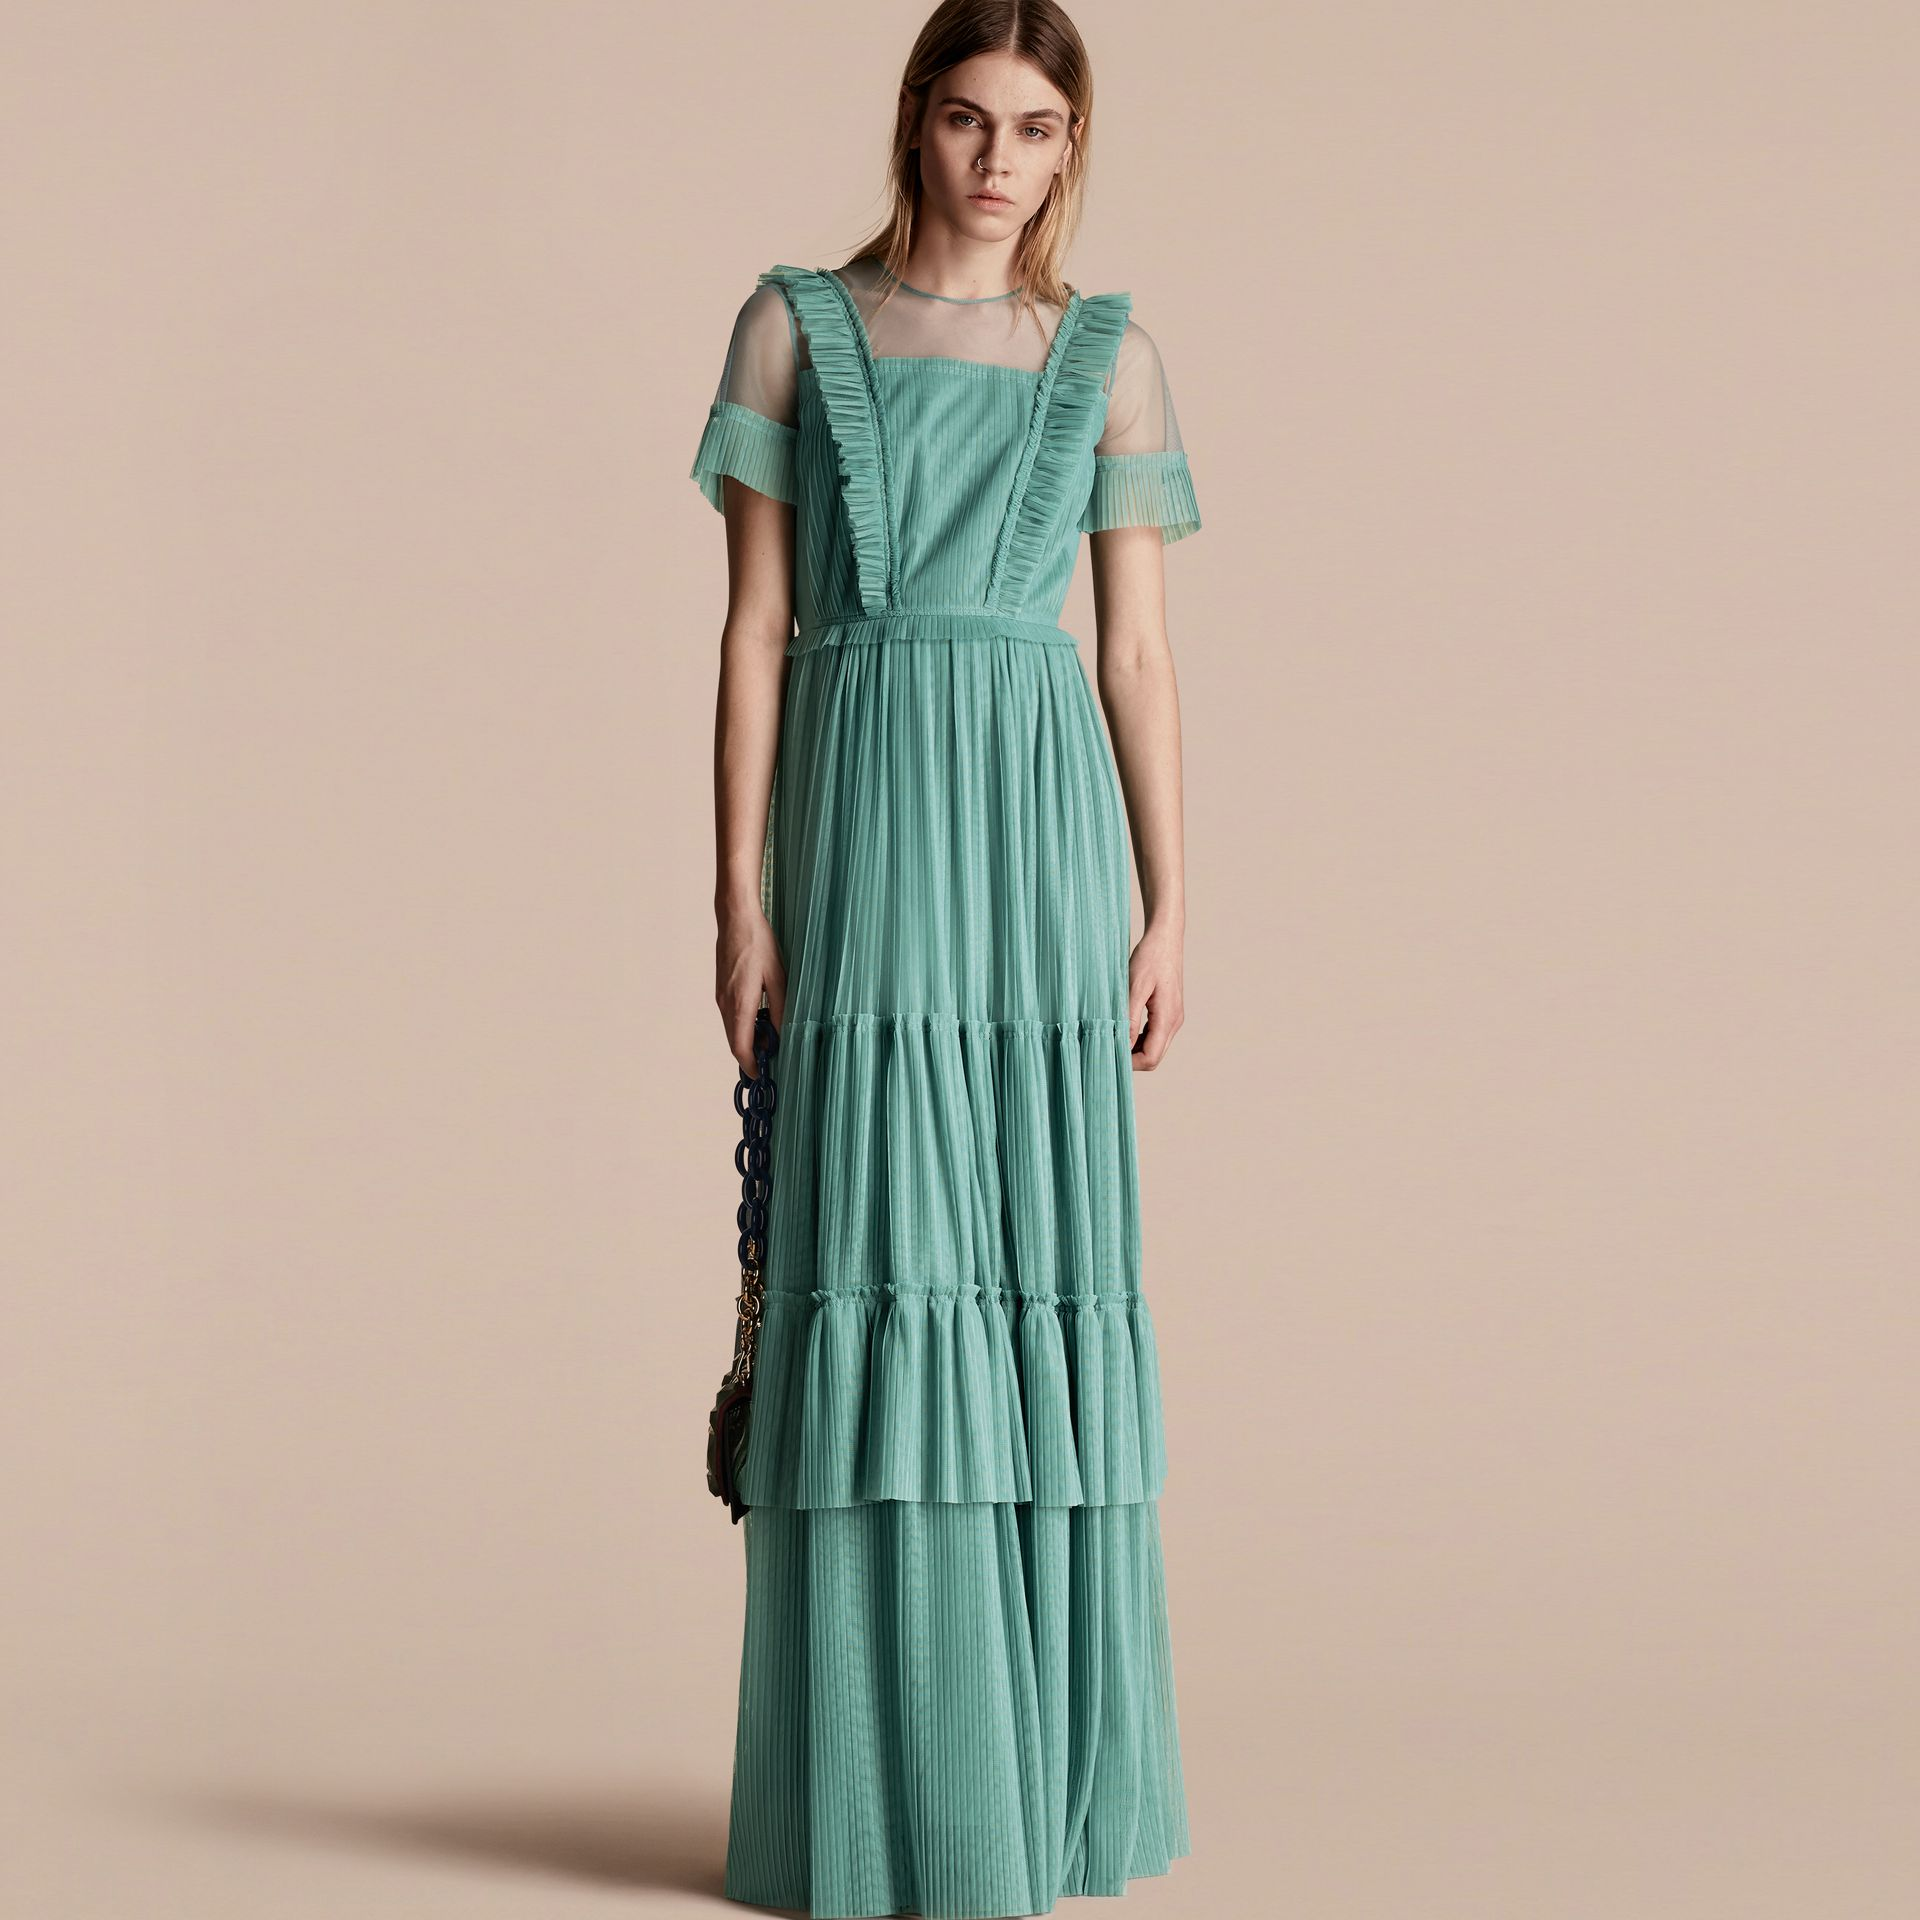 Aqua green Ruffle Detail Floor-length Dress - gallery image 1